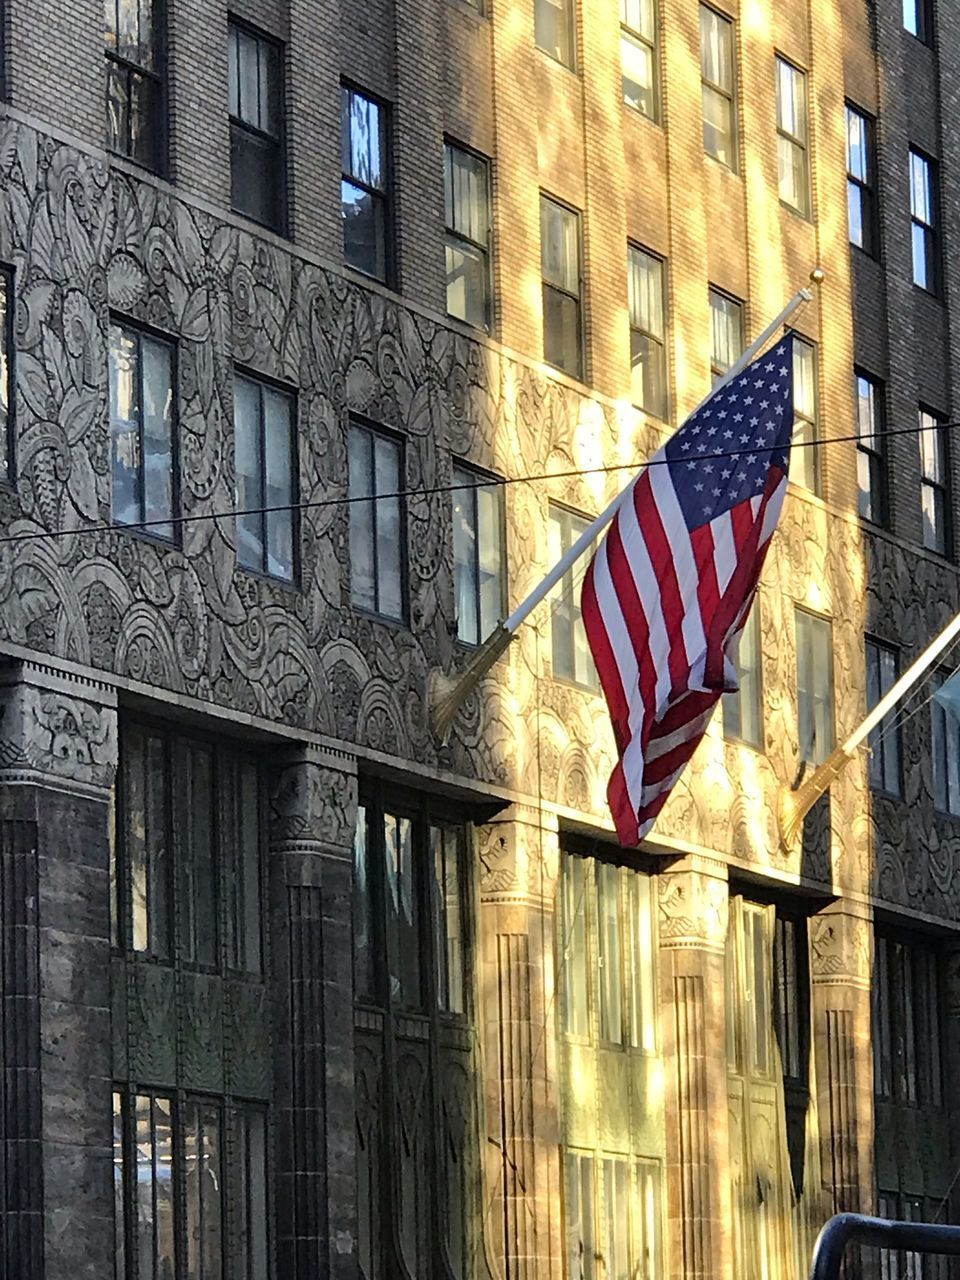 building exterior, built structure, architecture, flag, patriotism, building, window, striped, no people, day, city, sunlight, outdoors, nature, low angle view, shape, star shape, national icon